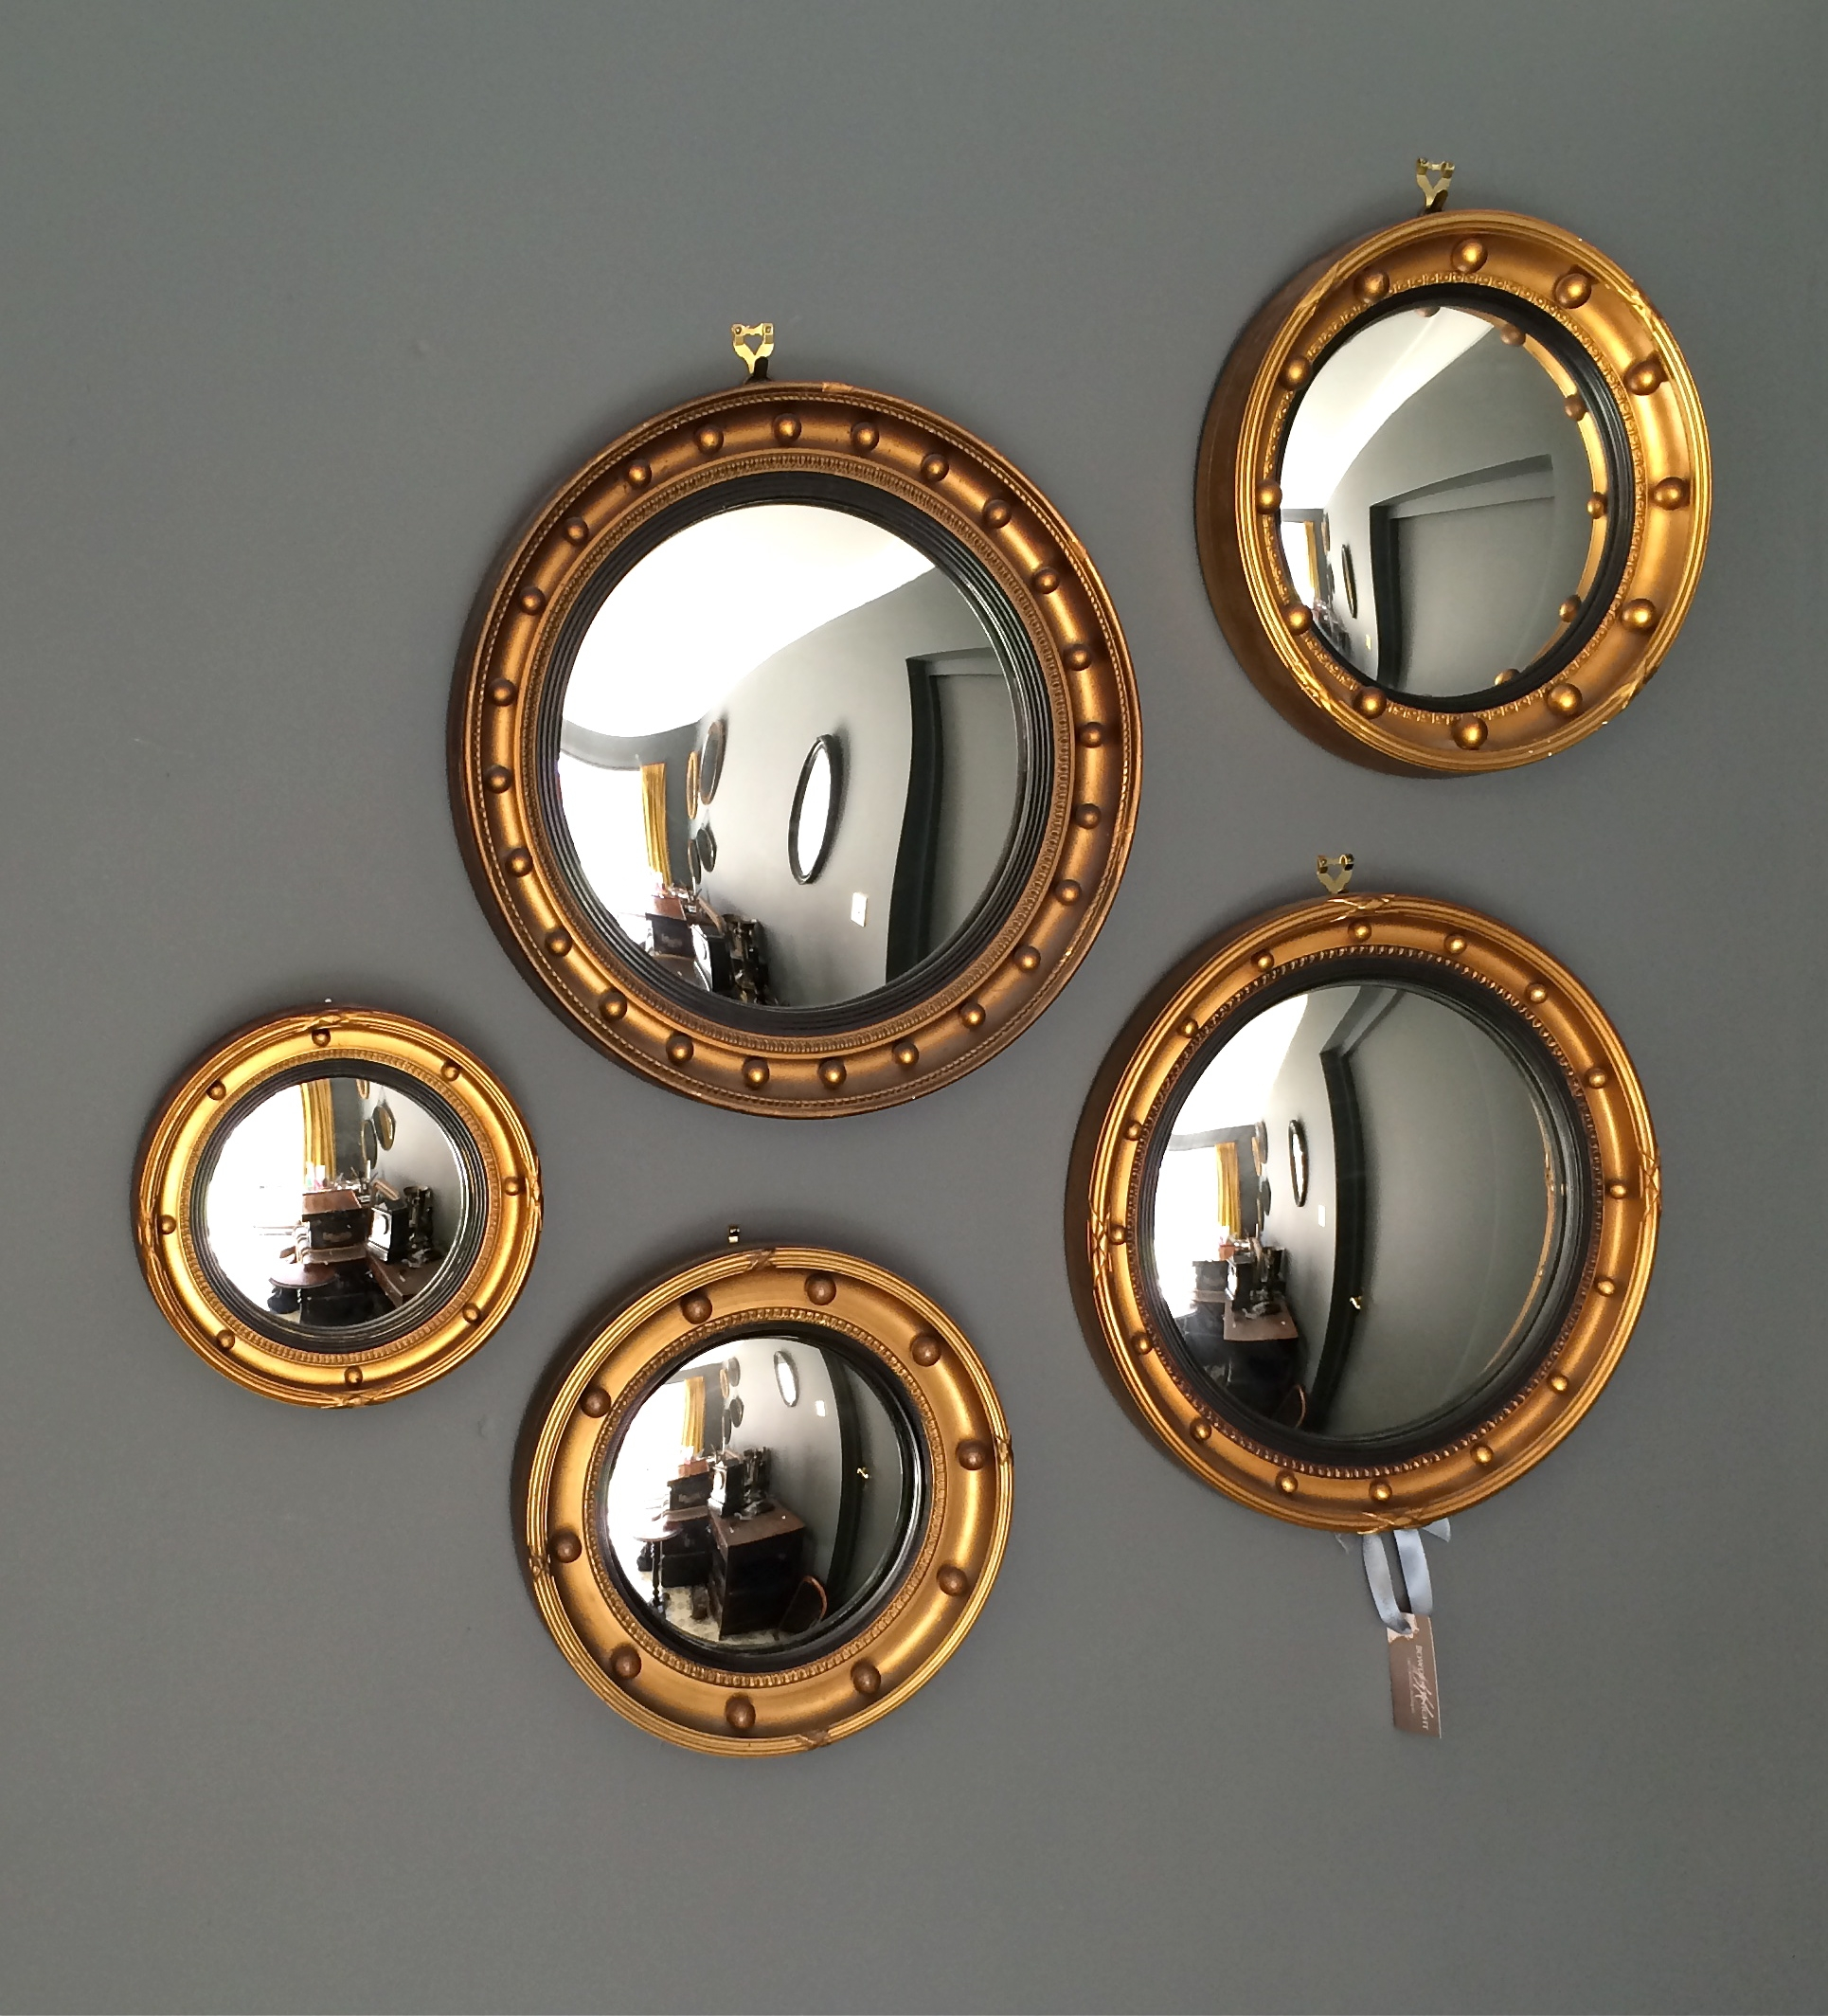 Summer Styling The Decorative Antique Way At Bowden Knight Inside Convex Decorative Mirror (Image 15 of 15)